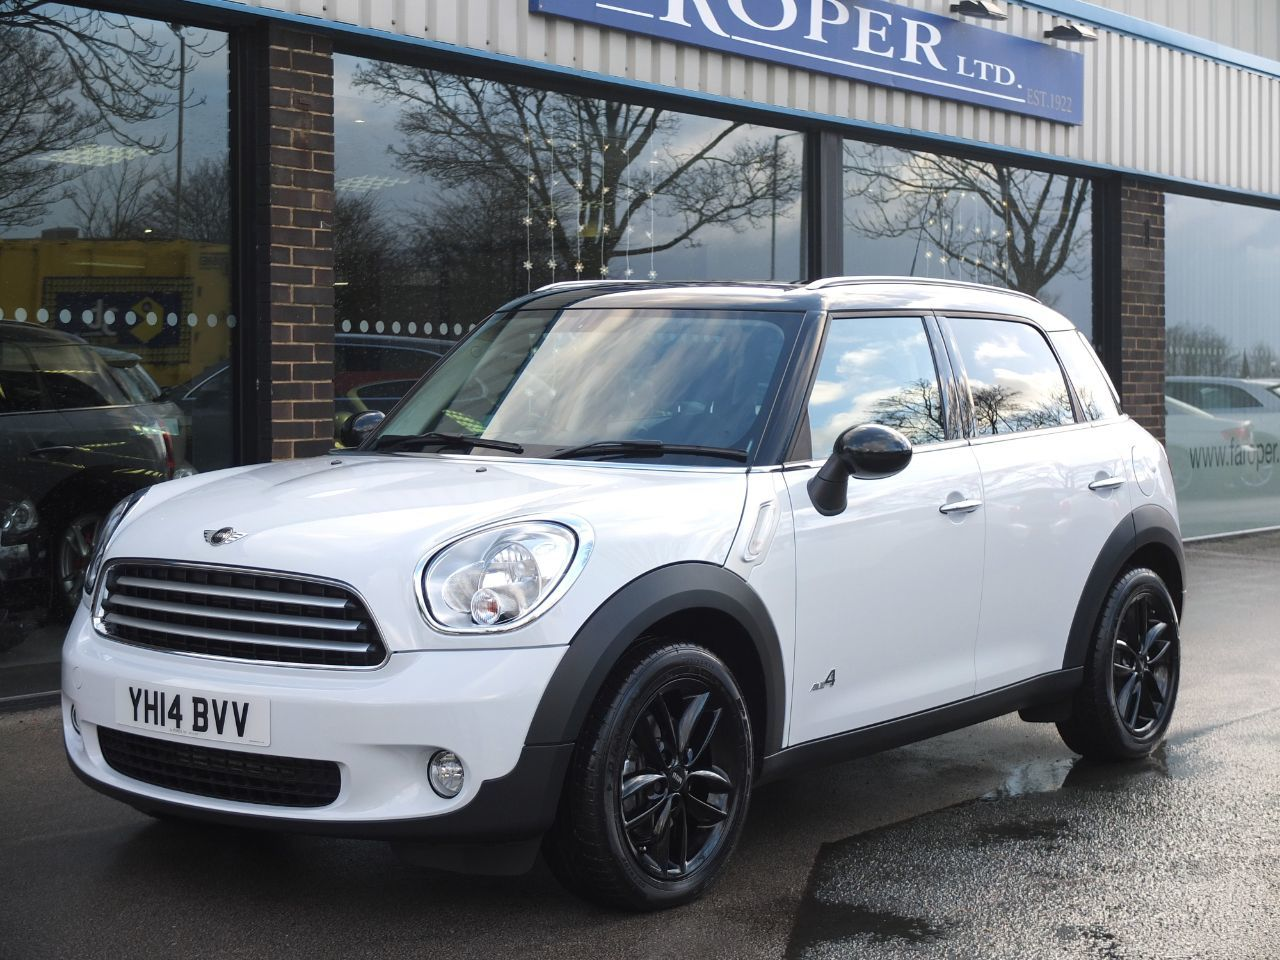 Mini Countryman 2.0 Cooper D ALL4 Auto (Chili Pack, Media, Pan Roof) Hatchback Diesel Light WhiteMini Countryman 2.0 Cooper D ALL4 Auto (Chili Pack, Media, Pan Roof) Hatchback Diesel Light White at fa Roper Ltd Bradford